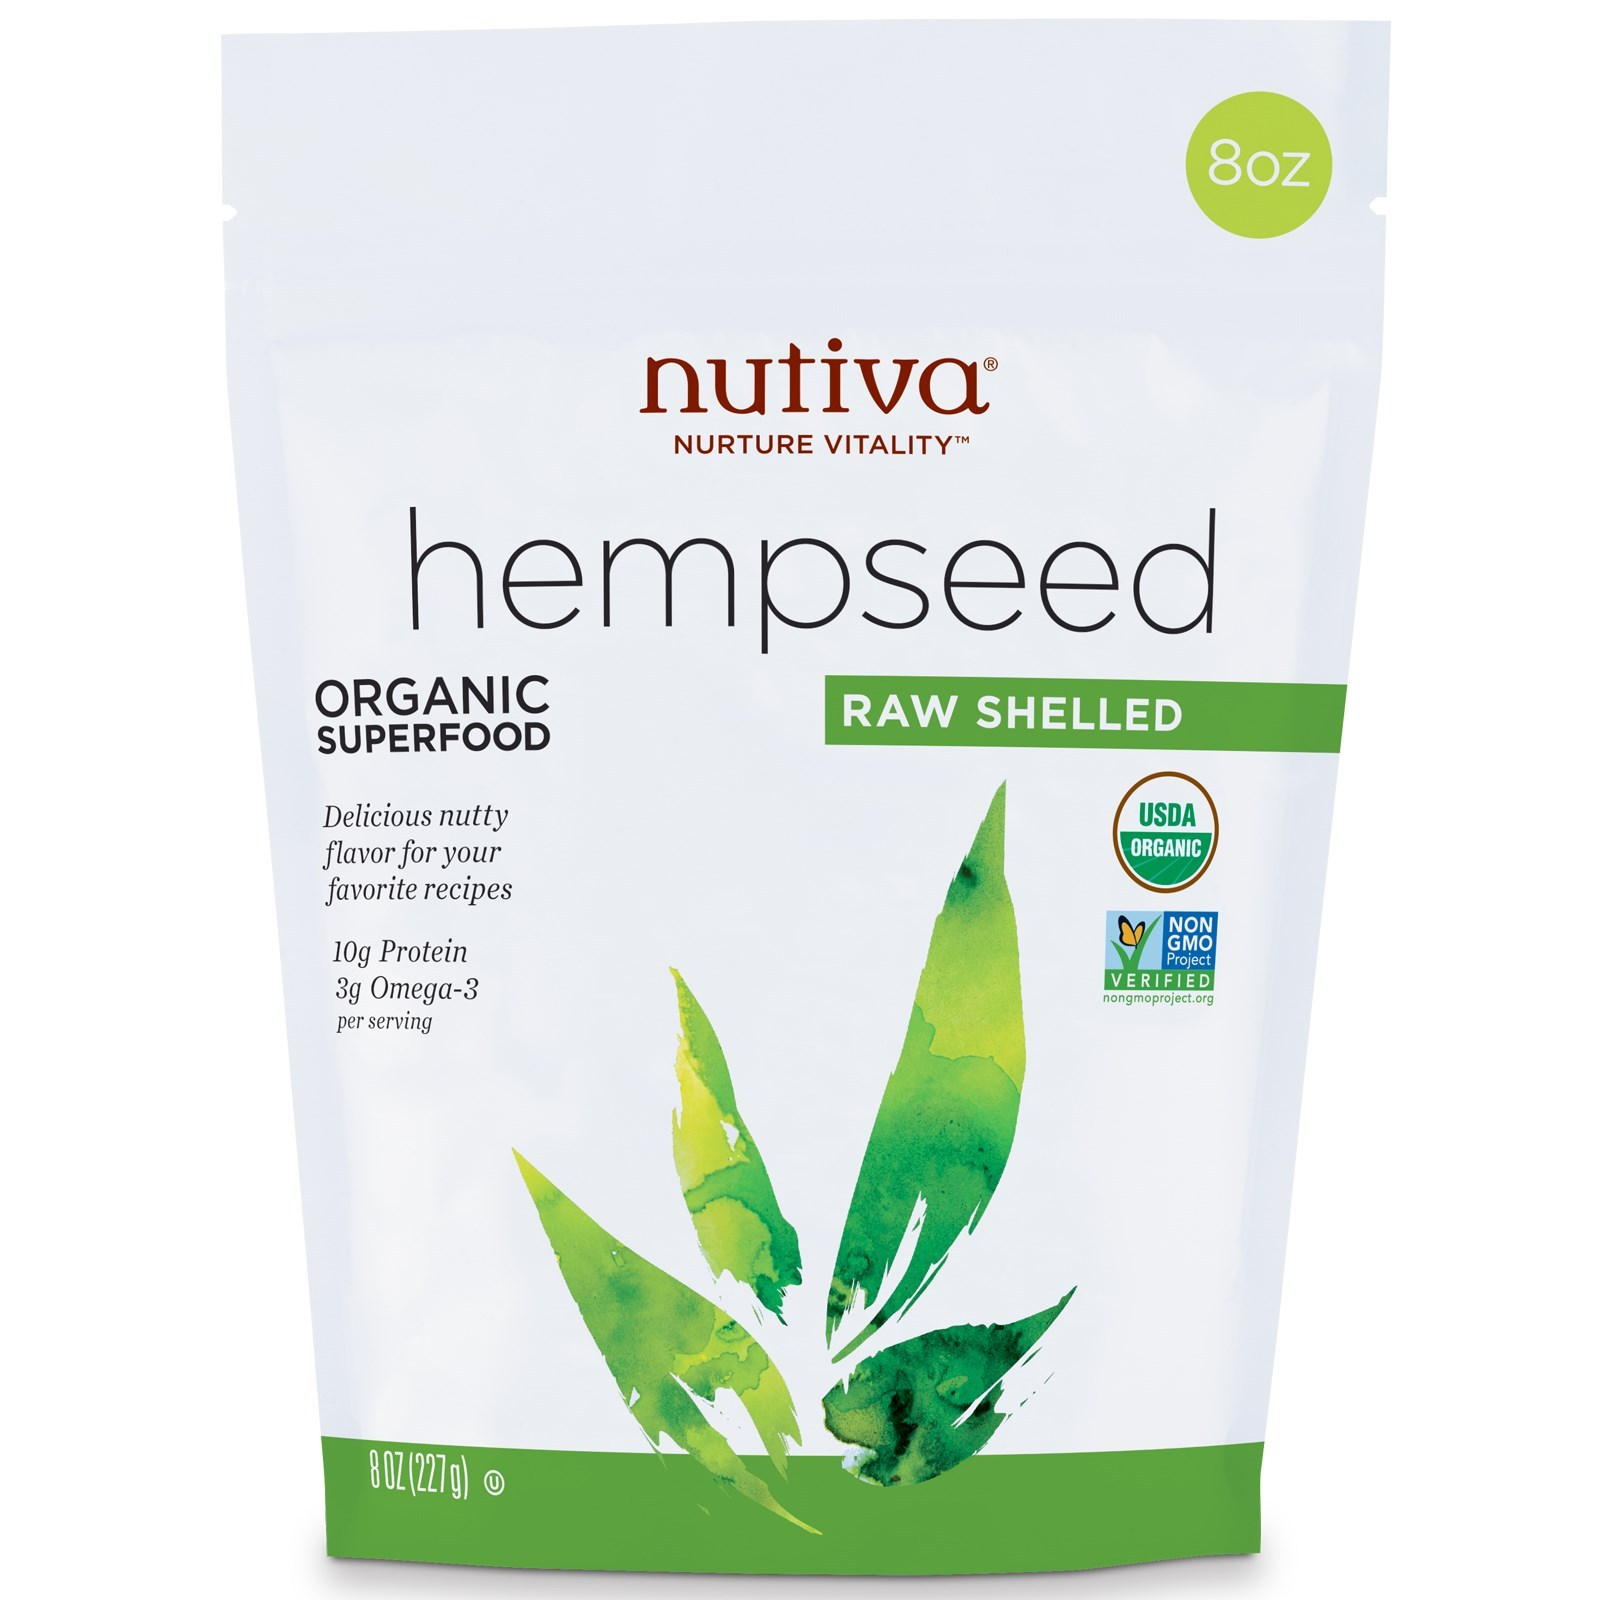 Nutiva, Hempseed, Organic Superfood, Raw Shelled, 8 oz (227 g)  productos orgáni for sale  USA